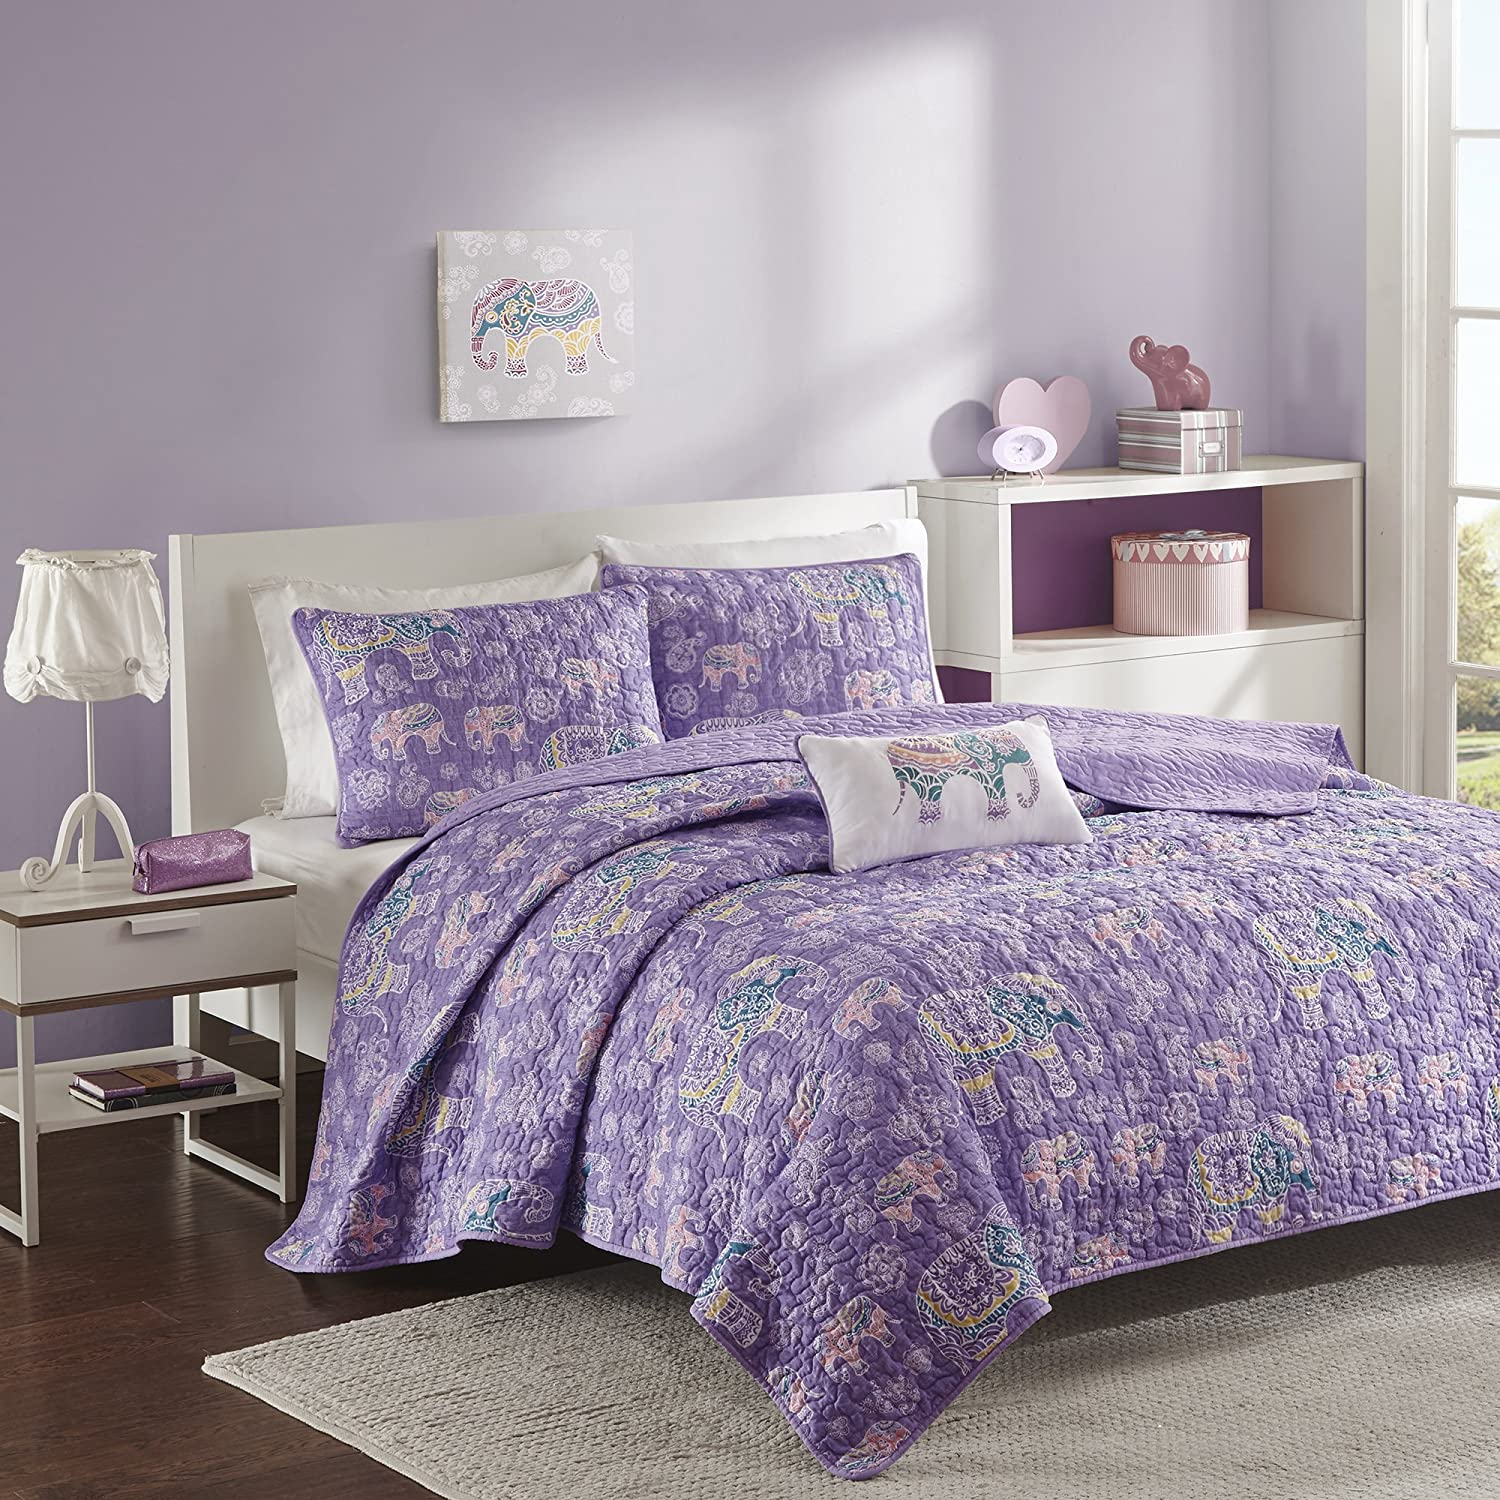 Mizone MZ80-471 Elly Coverlet Set Twin/Twin X-Large, Purple